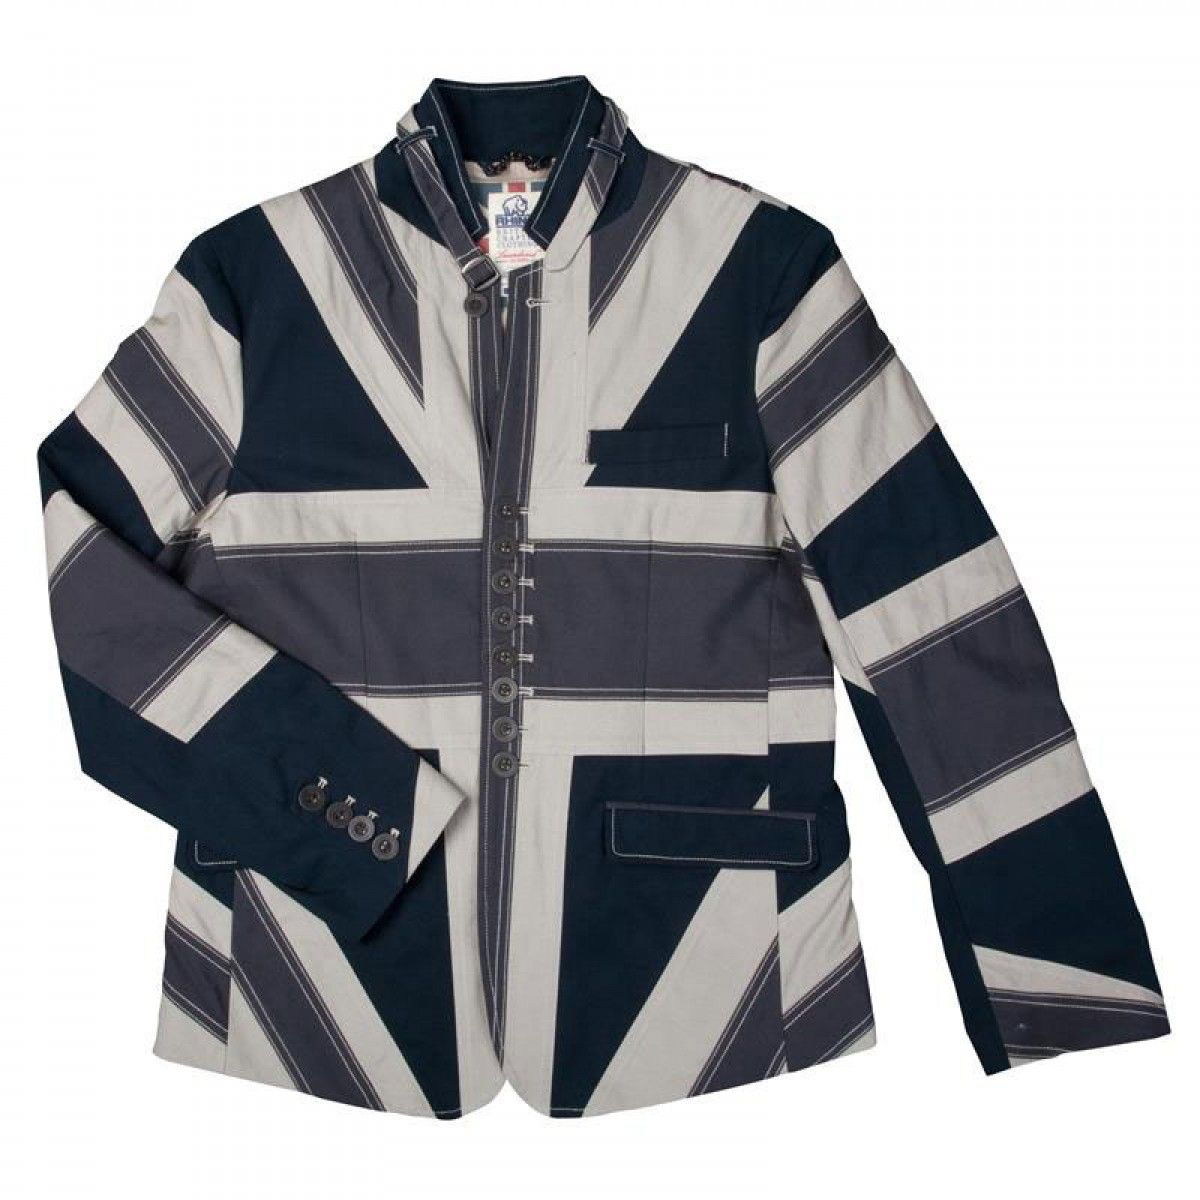 Union Jack Jacket Navy Jackets